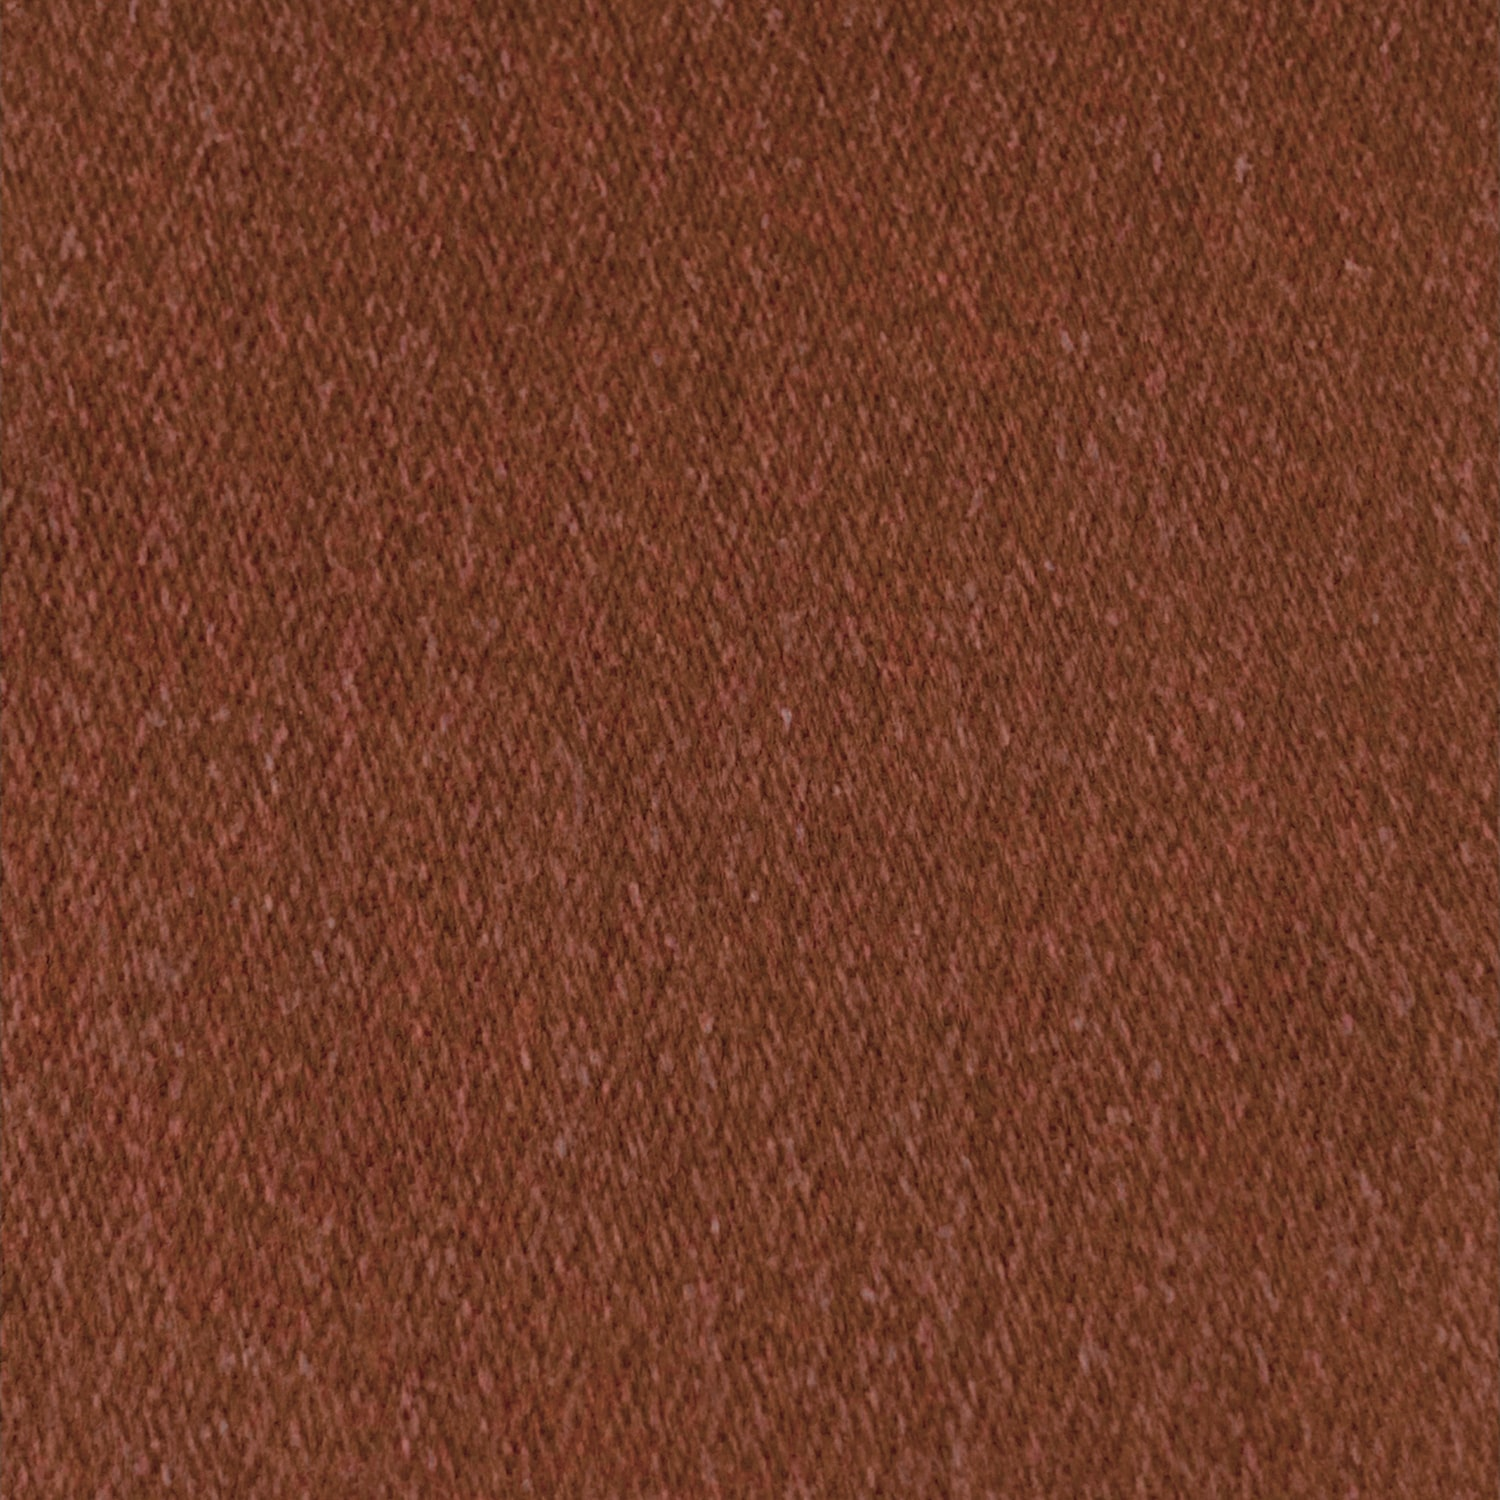 Sunbrella: Pashmina Terracotta (grade 3): #PSM1802<br>Extreme durability; cleans with water; no sun discoloration